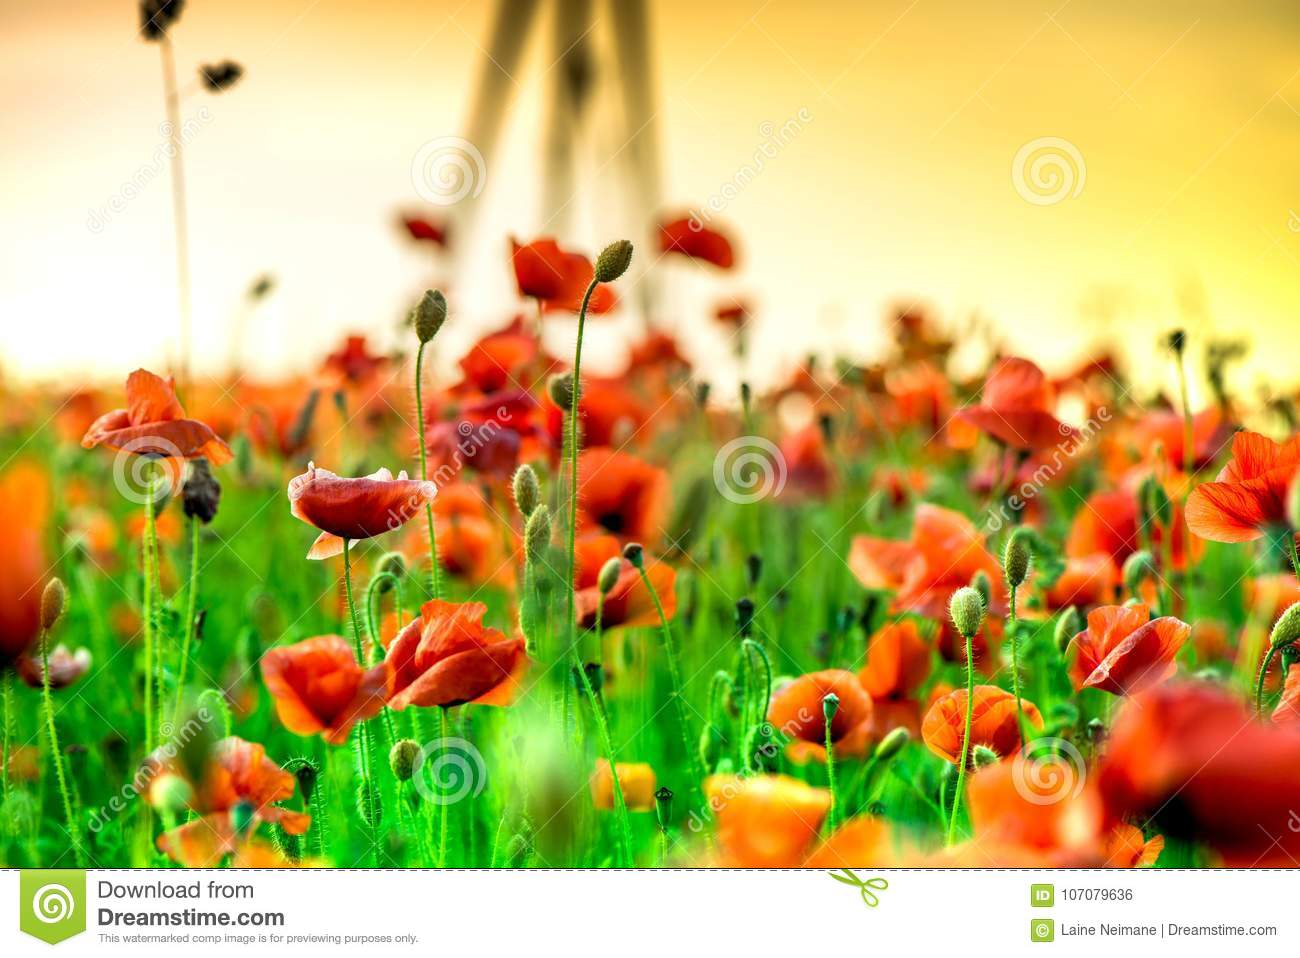 Macro shot of a red poppy bloom in a colorful, abstract and vibrant blossom field, a meadow full of blooming summer flowers